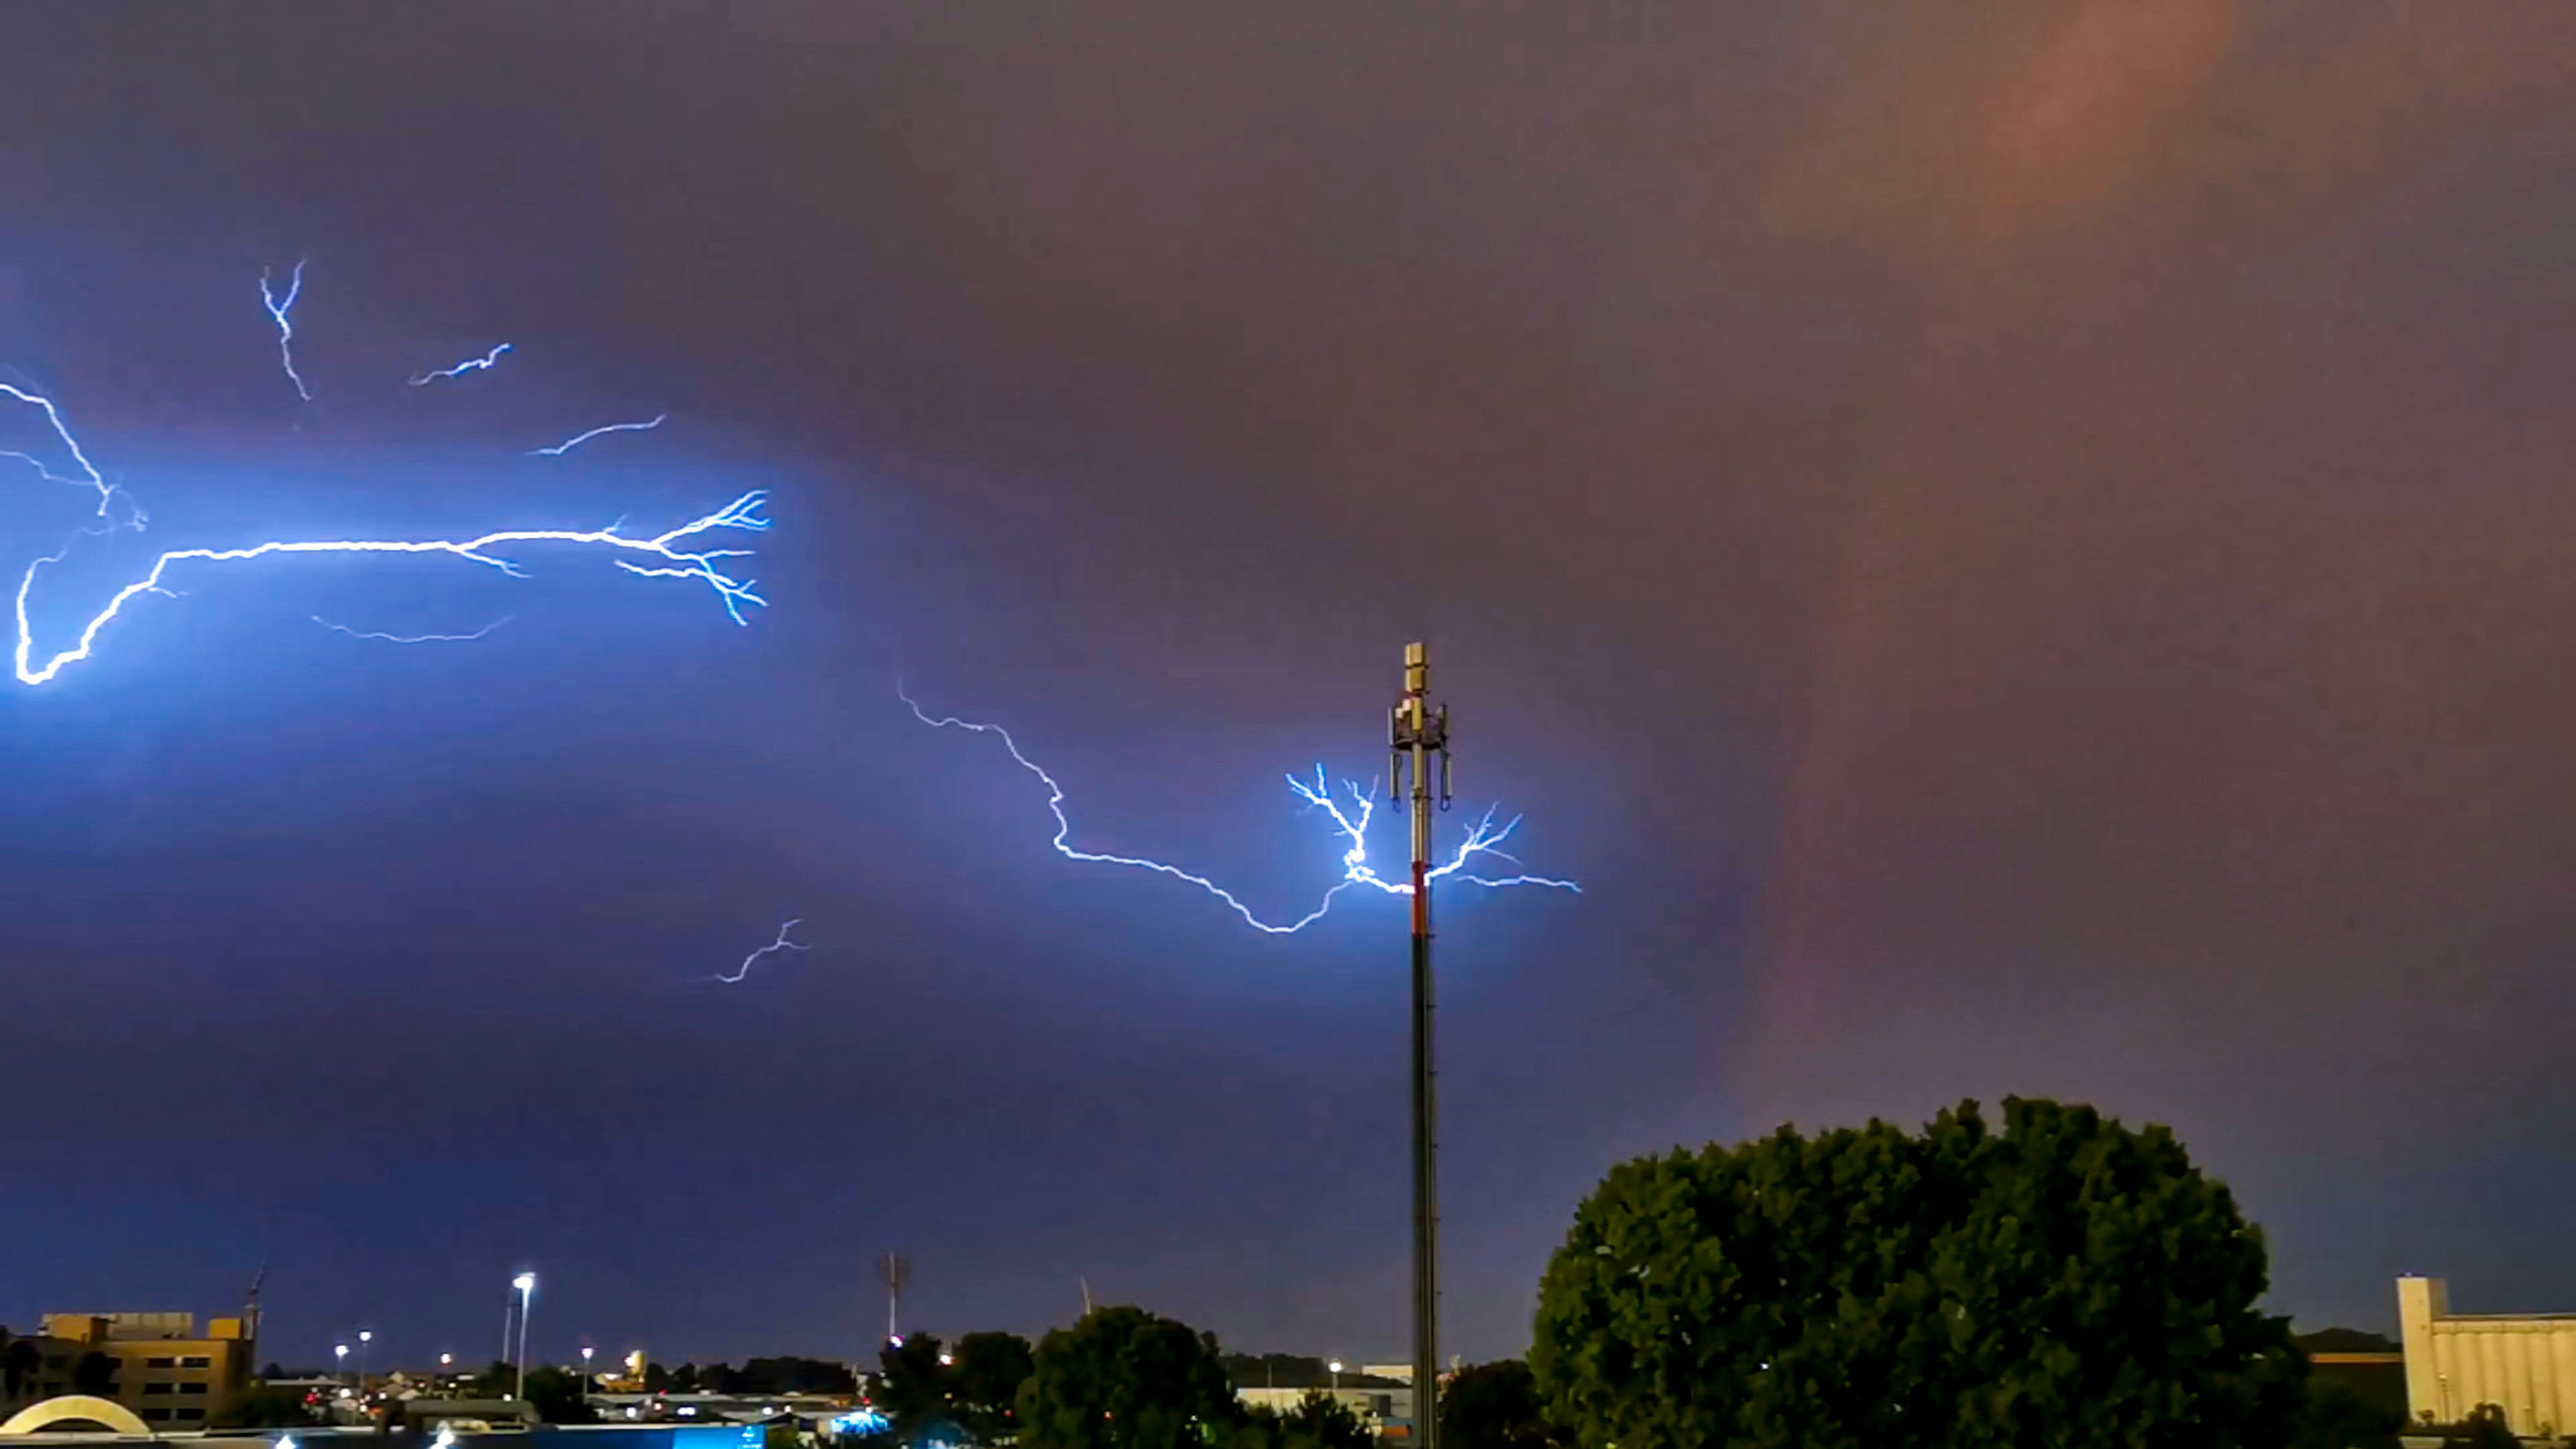 lightning, power in nature, storm, thunderstorm, cloud, thunder, sky, beauty in nature, forked lightning, night, electricity, warning sign, storm cloud, sign, environment, dramatic sky, communication, nature, architecture, extreme weather, tree, building exterior, illuminated, city, rain, no people, bolt, outdoors, built structure, wet, atmospheric mood, building, overcast, violence, aggression, landscape